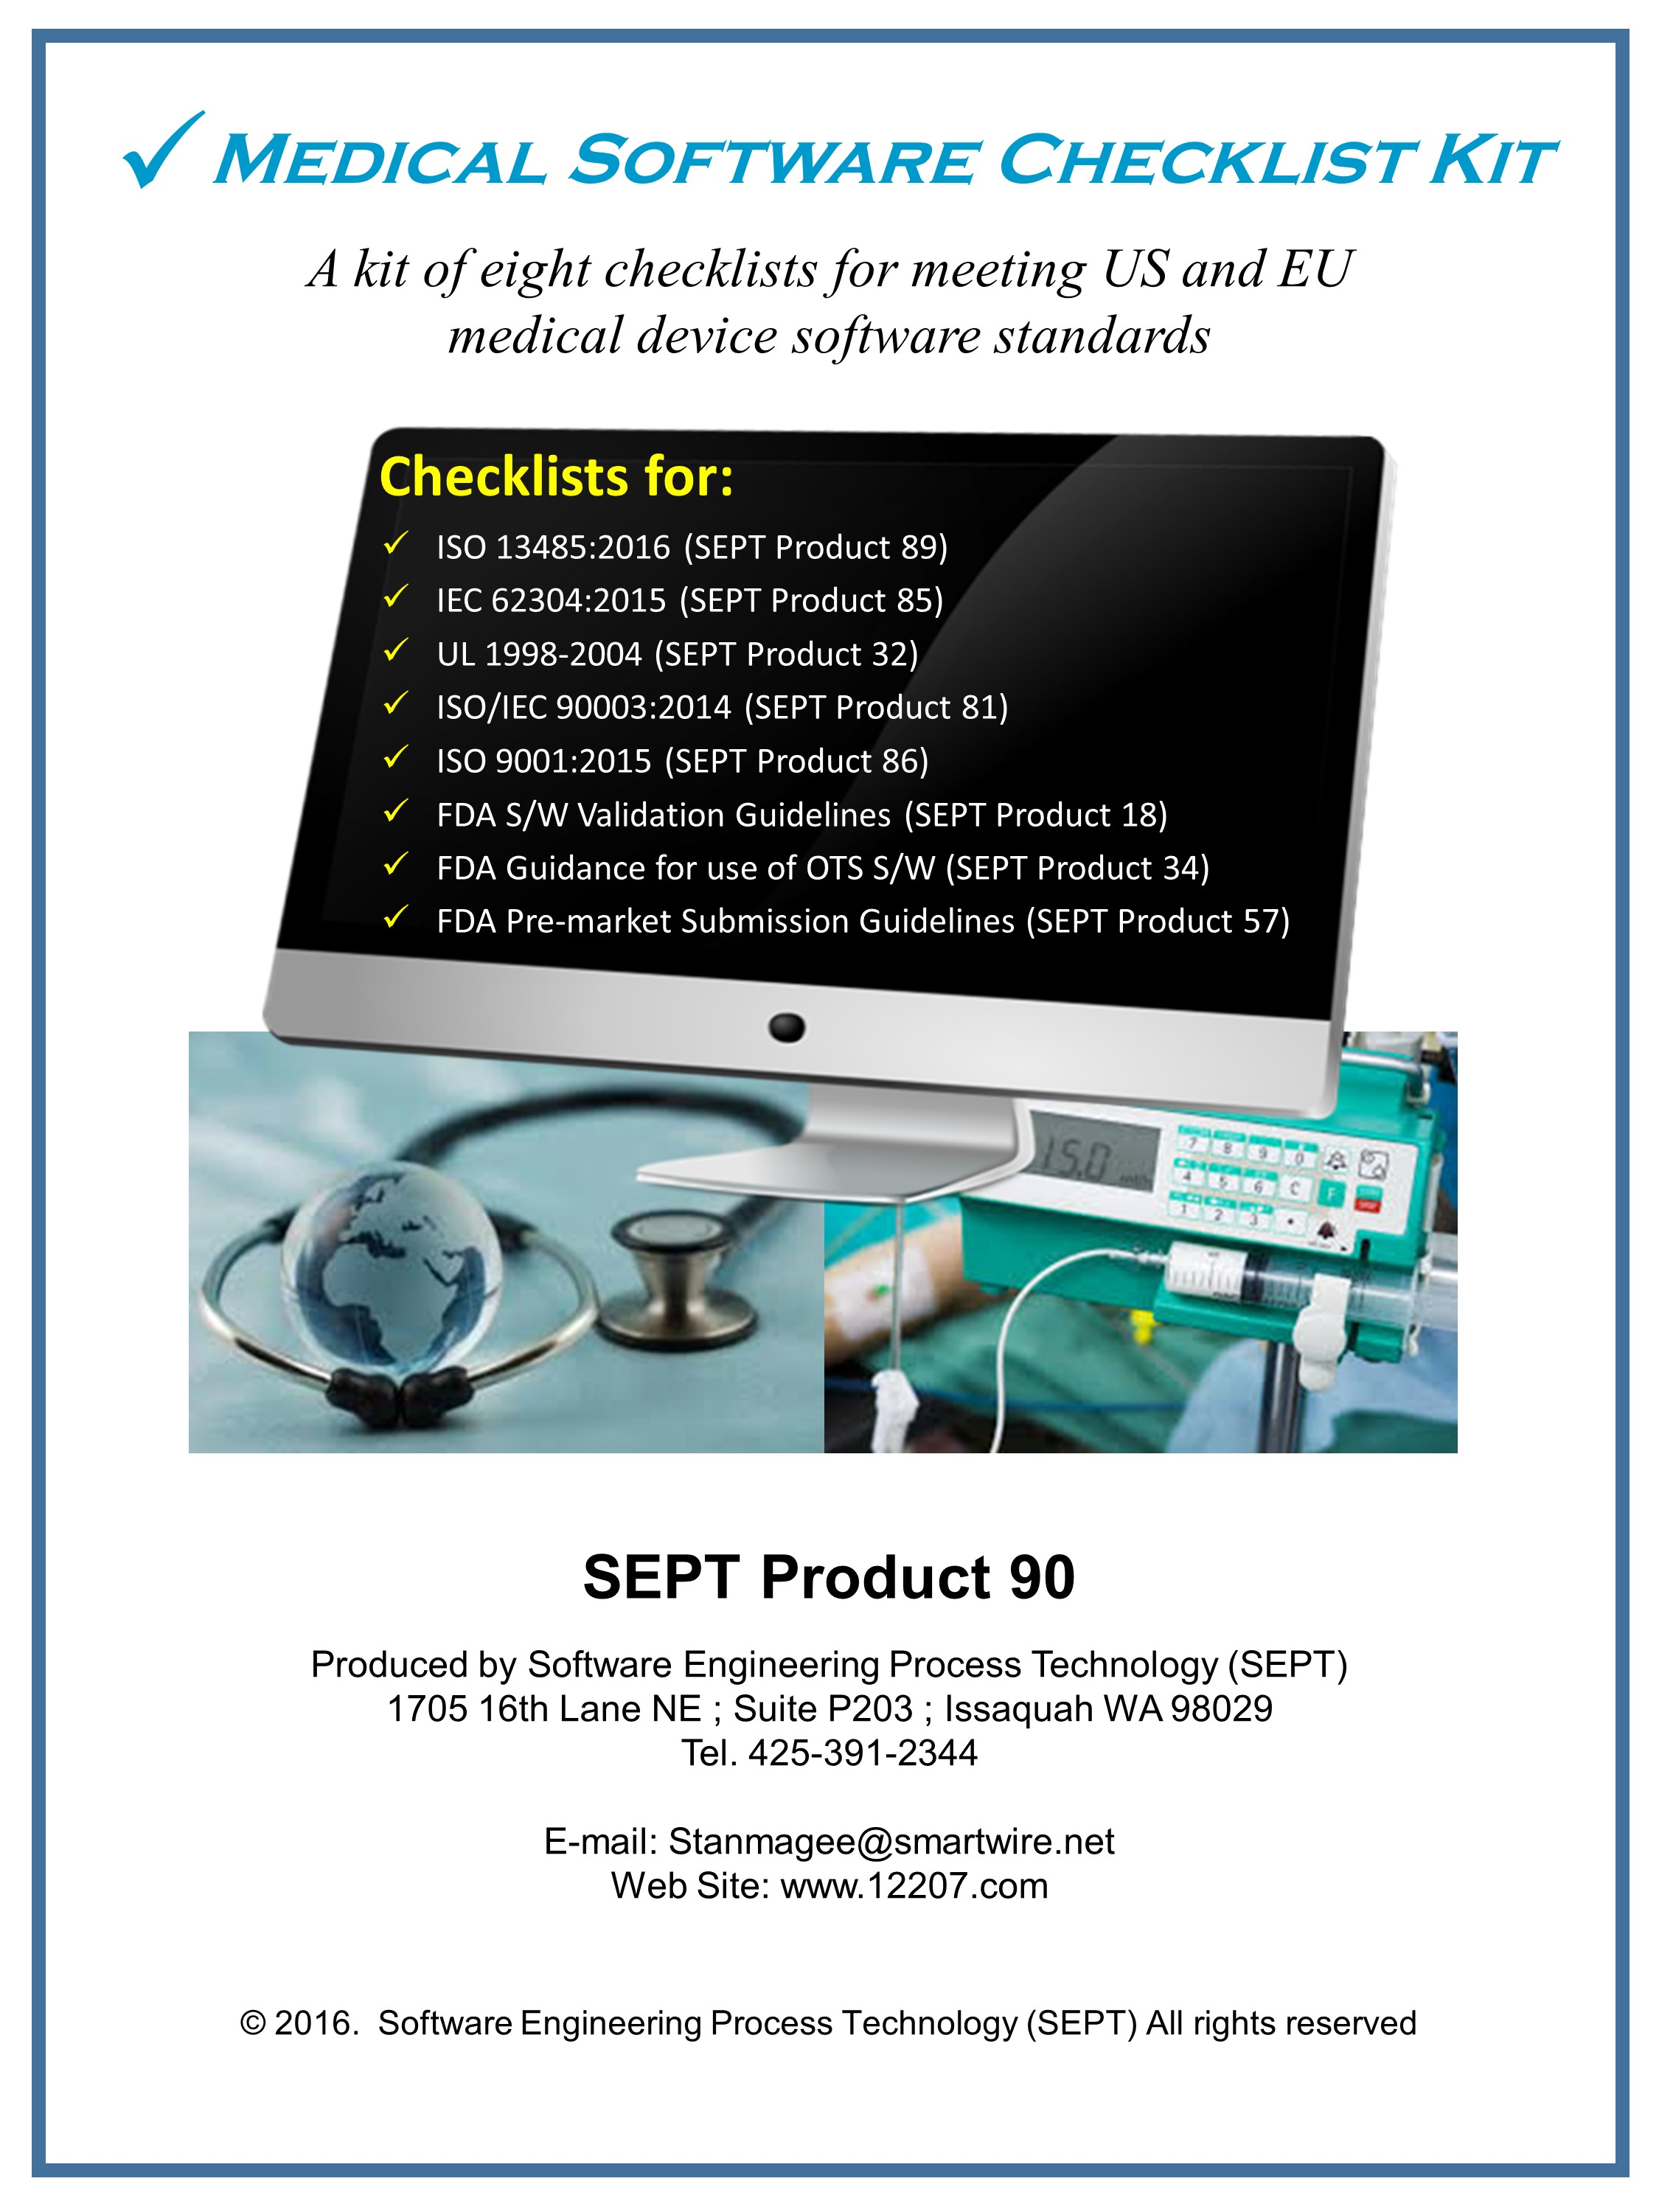 Medical Software Checklist Kit